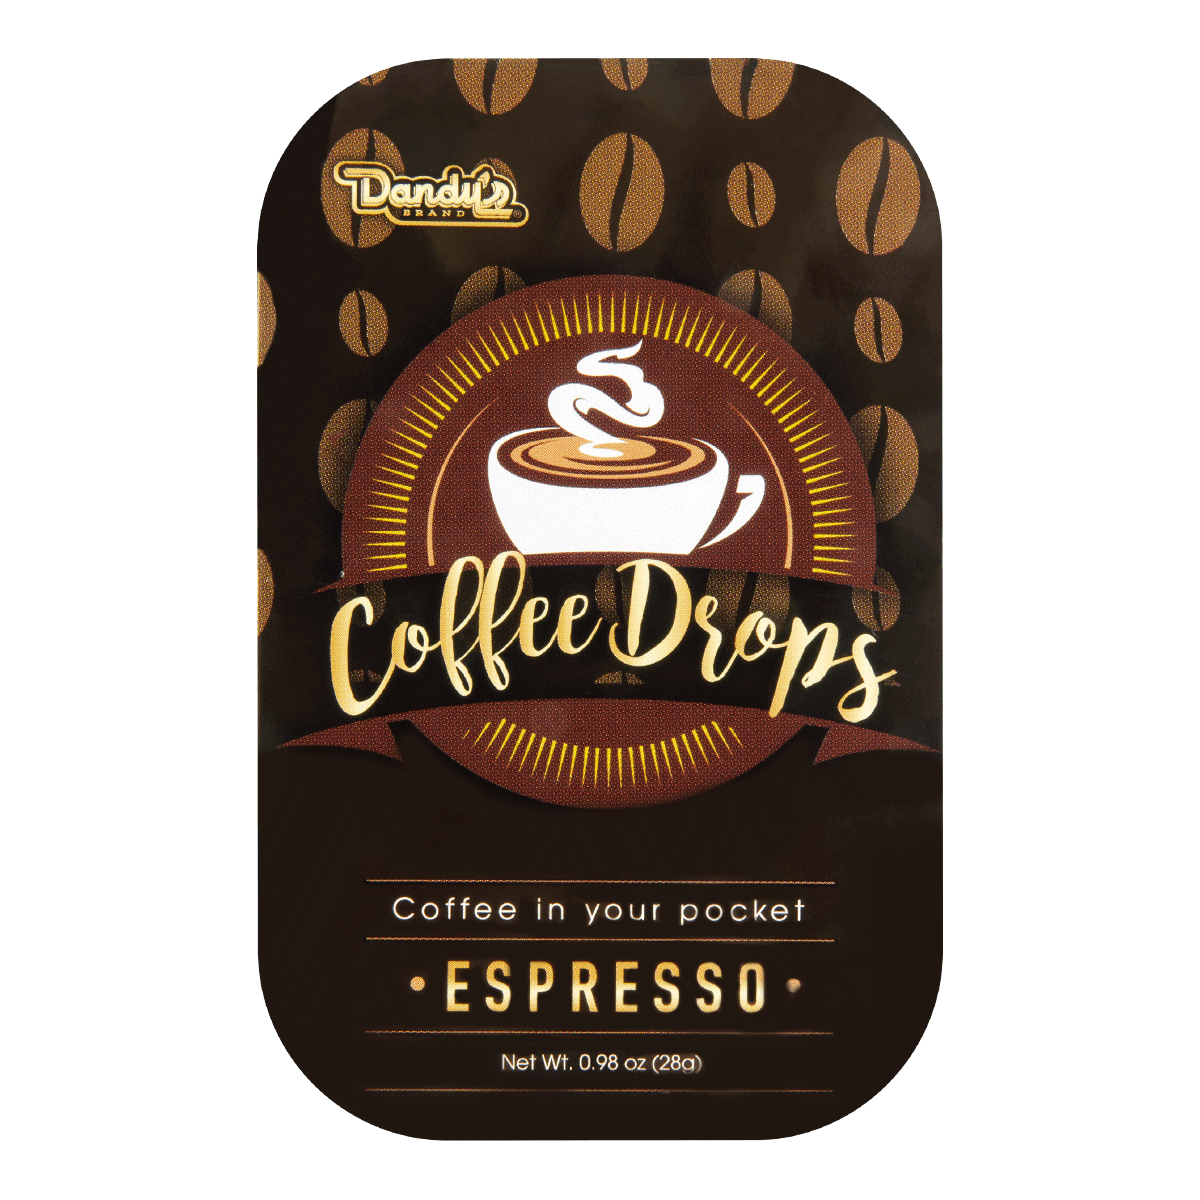 DANDY Coffee Drops-Espresso 28g